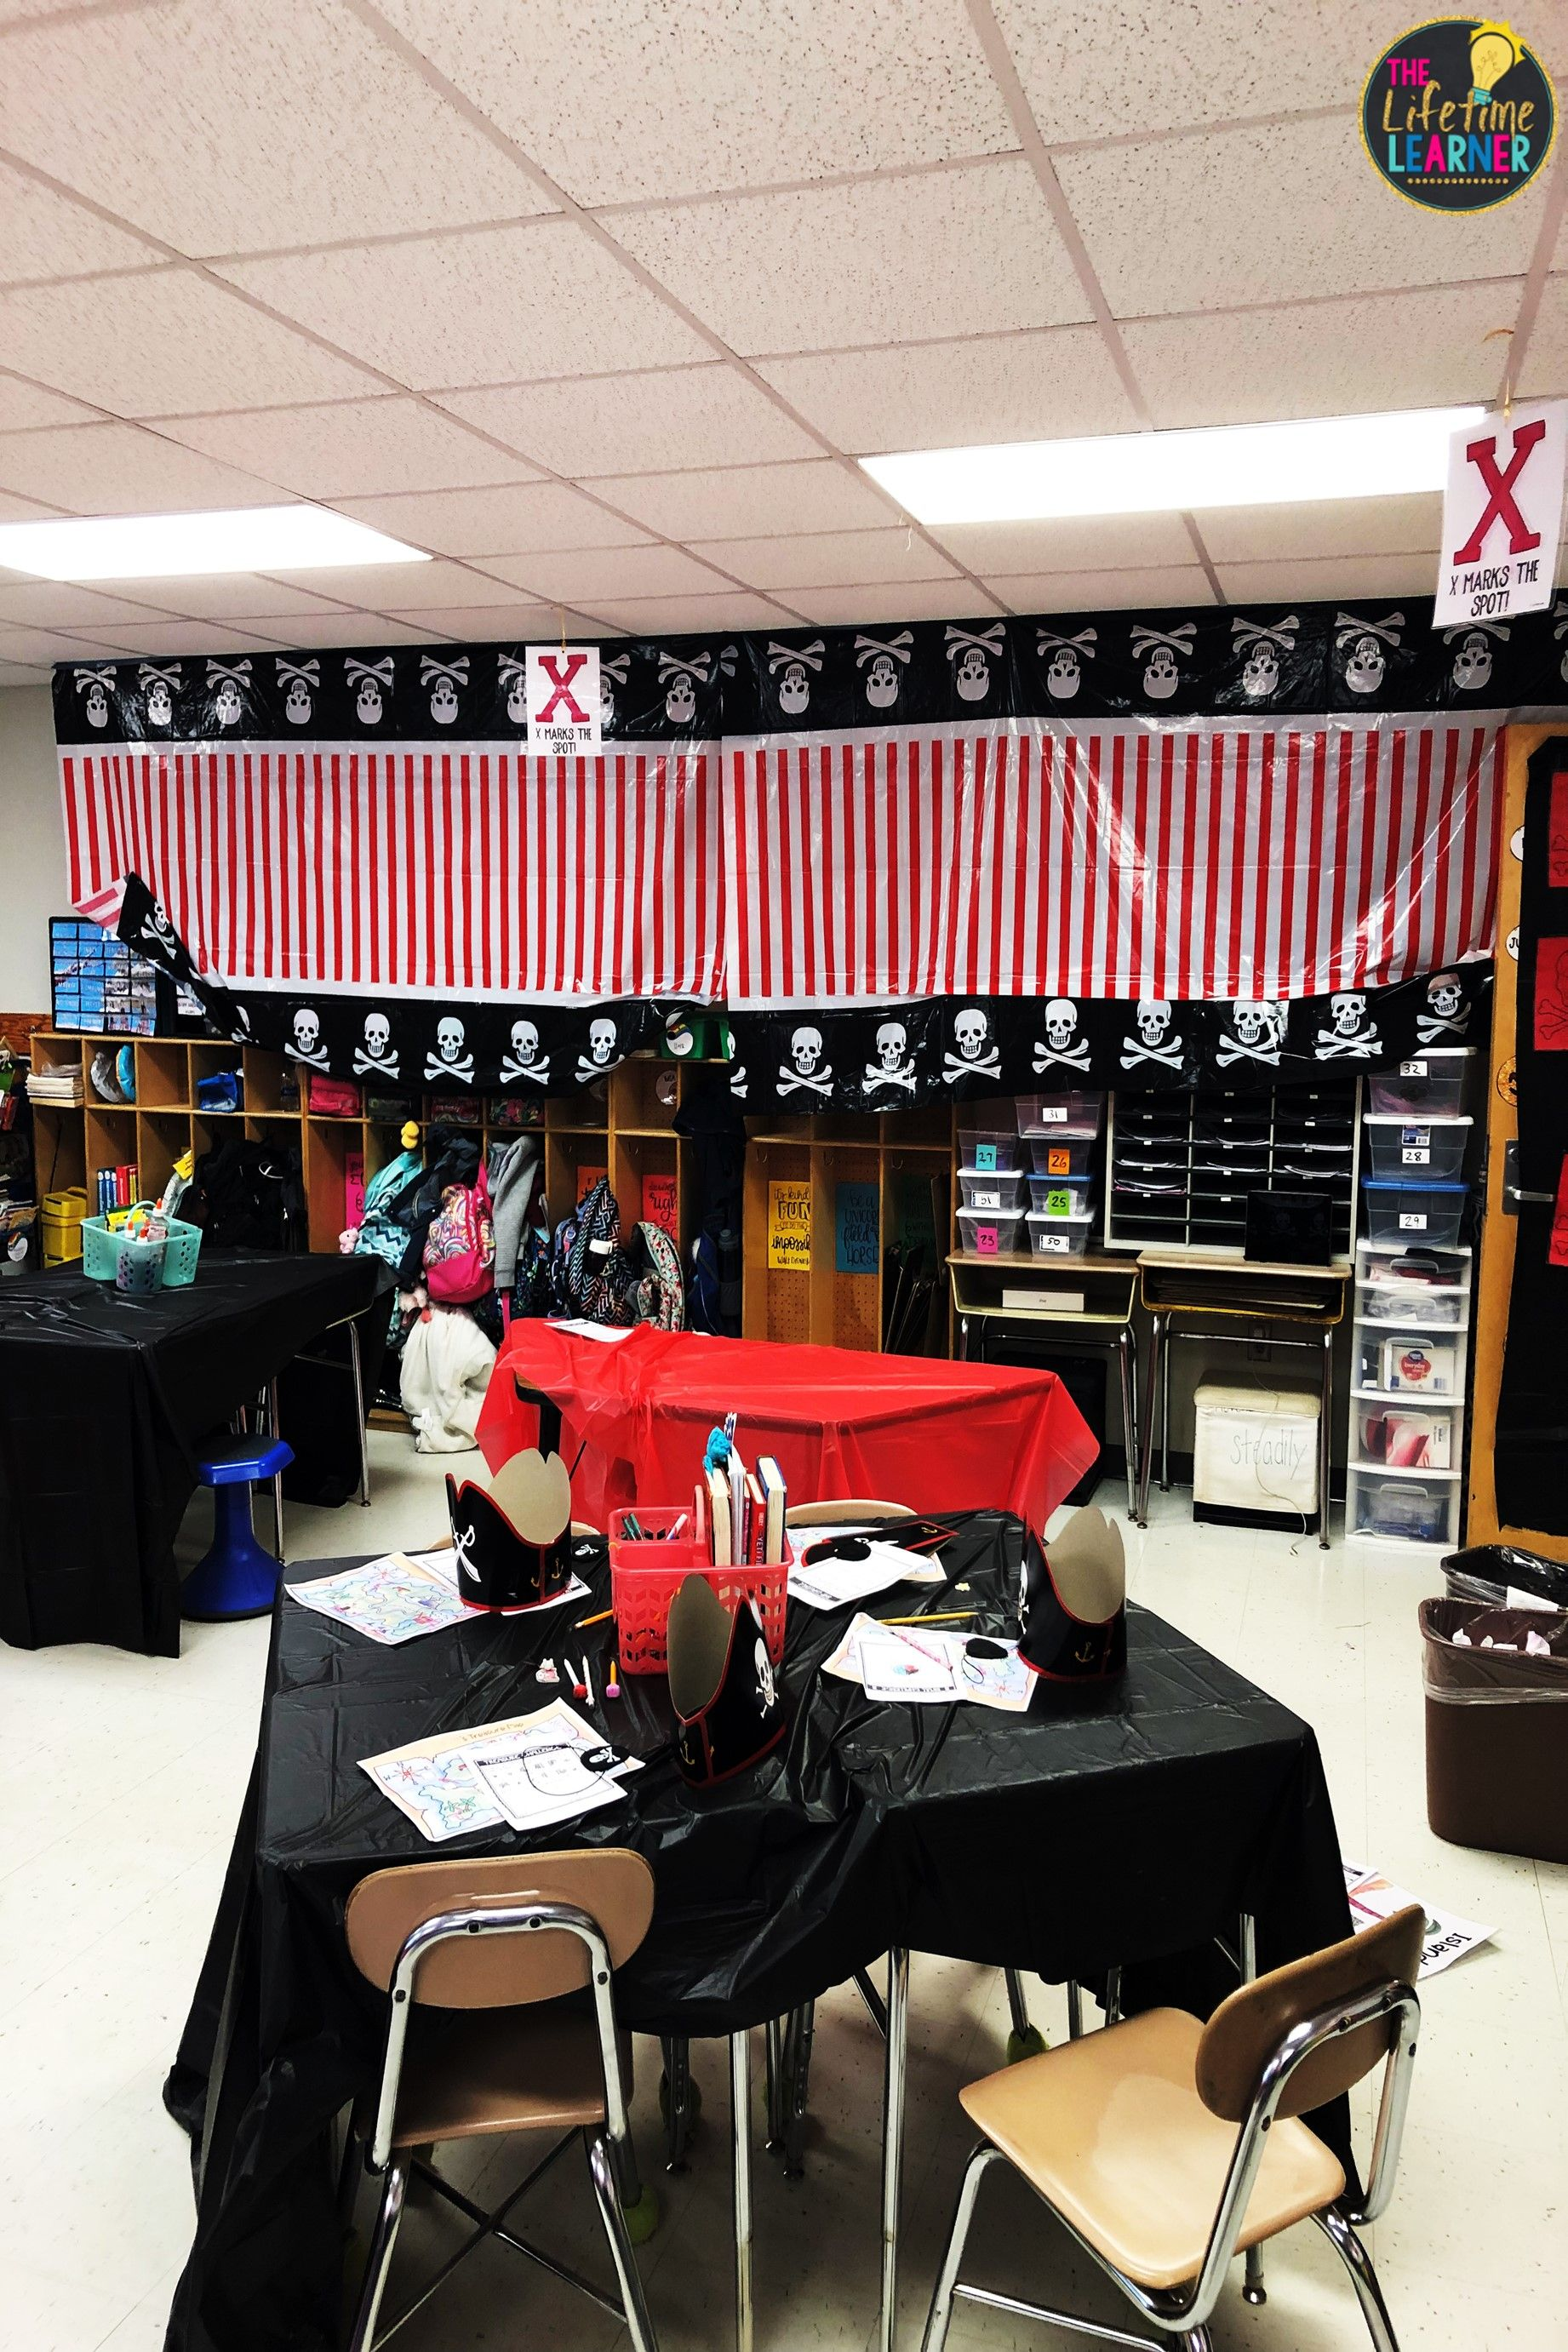 Check Out This Fun Pirate Classroom Transformation For 4th